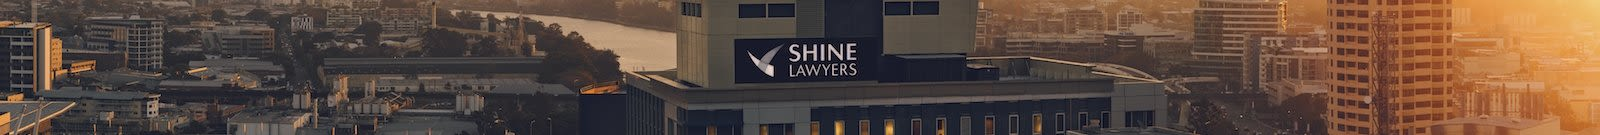 Shine Lawyers | Shine Lawyers building | Shine Lawyers